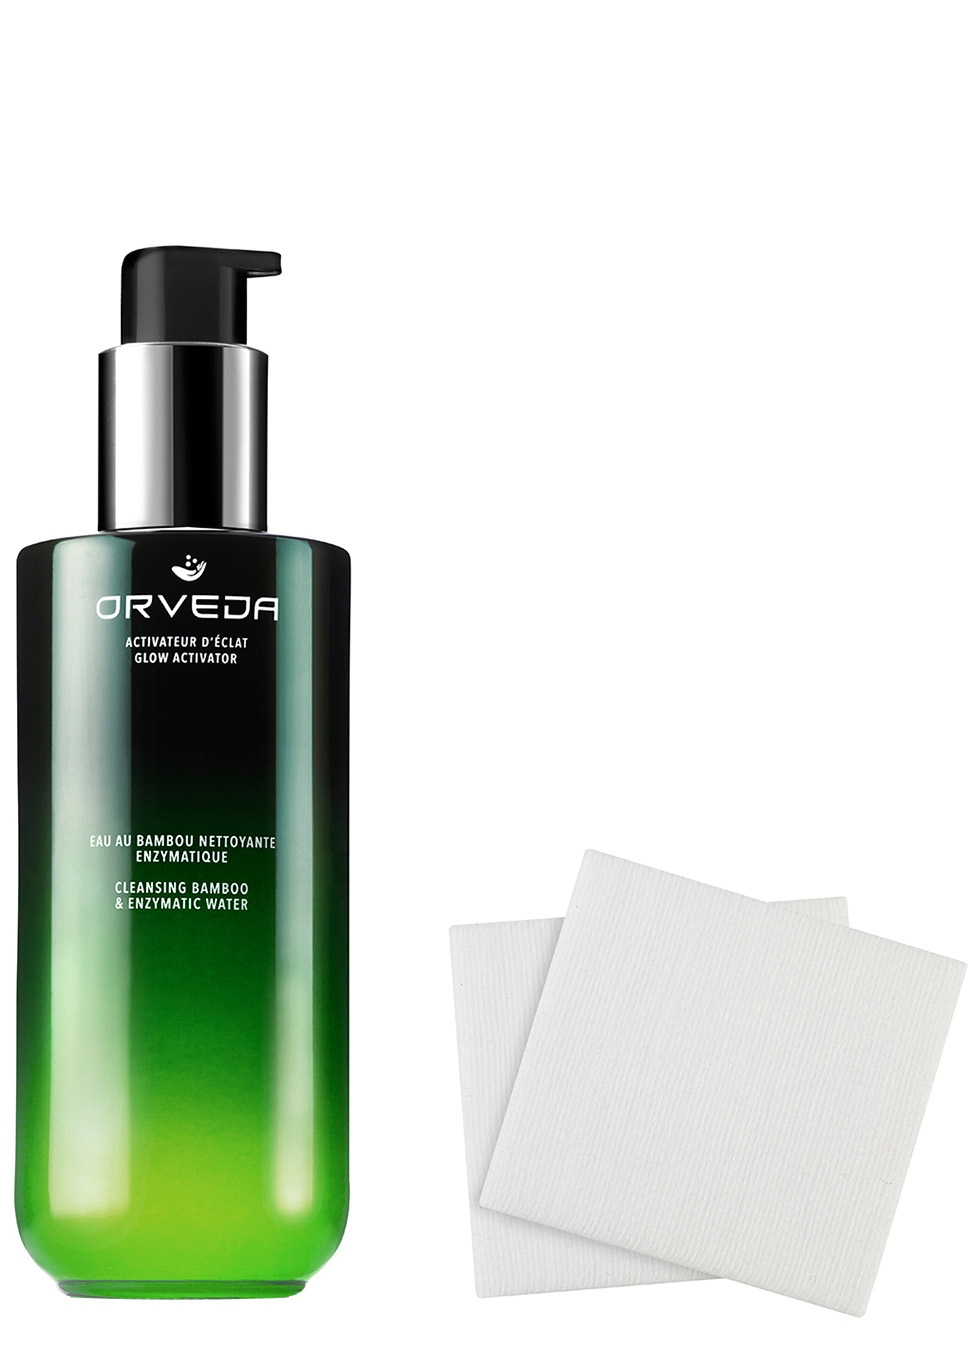 Cleansing Bamboo & Enzymatic Water 200ml - Orveda